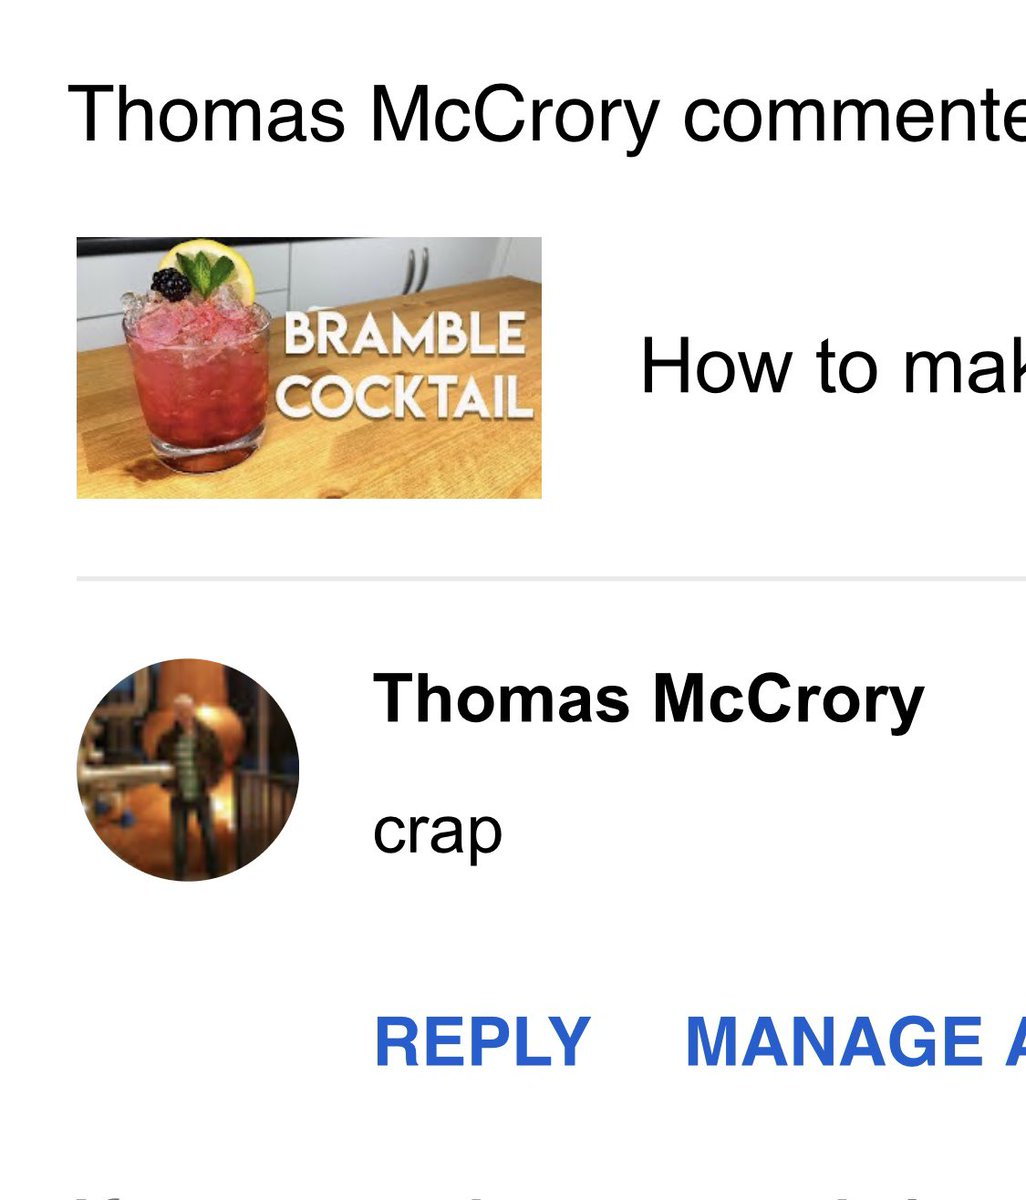 A lovely bit of constructive criticism from Thomas McCroy today. He's my biggest fan!   #gin #ginandtonic #gandt #booze #drink #drinks #drinking #alcohol #fun #nightout #ginandjuice #nightlife #drinkswithfriends #instagood #goodtimes #liquorpic.twitter.com/7G9yymAqrB